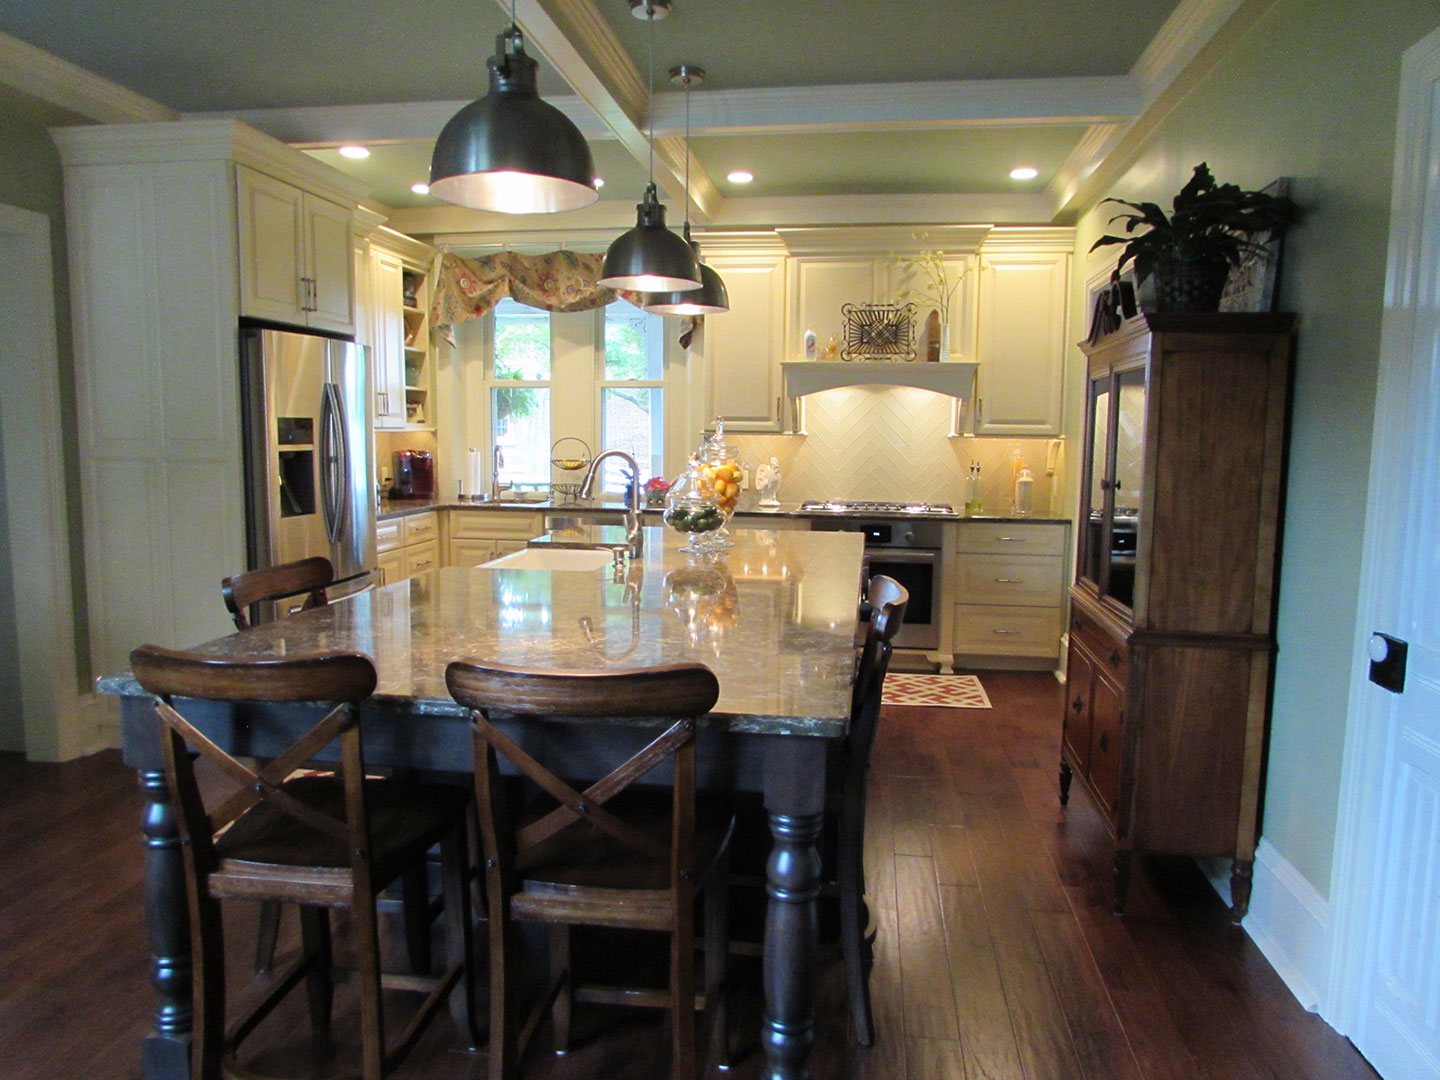 Kitchen Bathroom Remodeling Remodelers Lancaster Pa 26 Nice Kitchen Remodeling York Pa Images